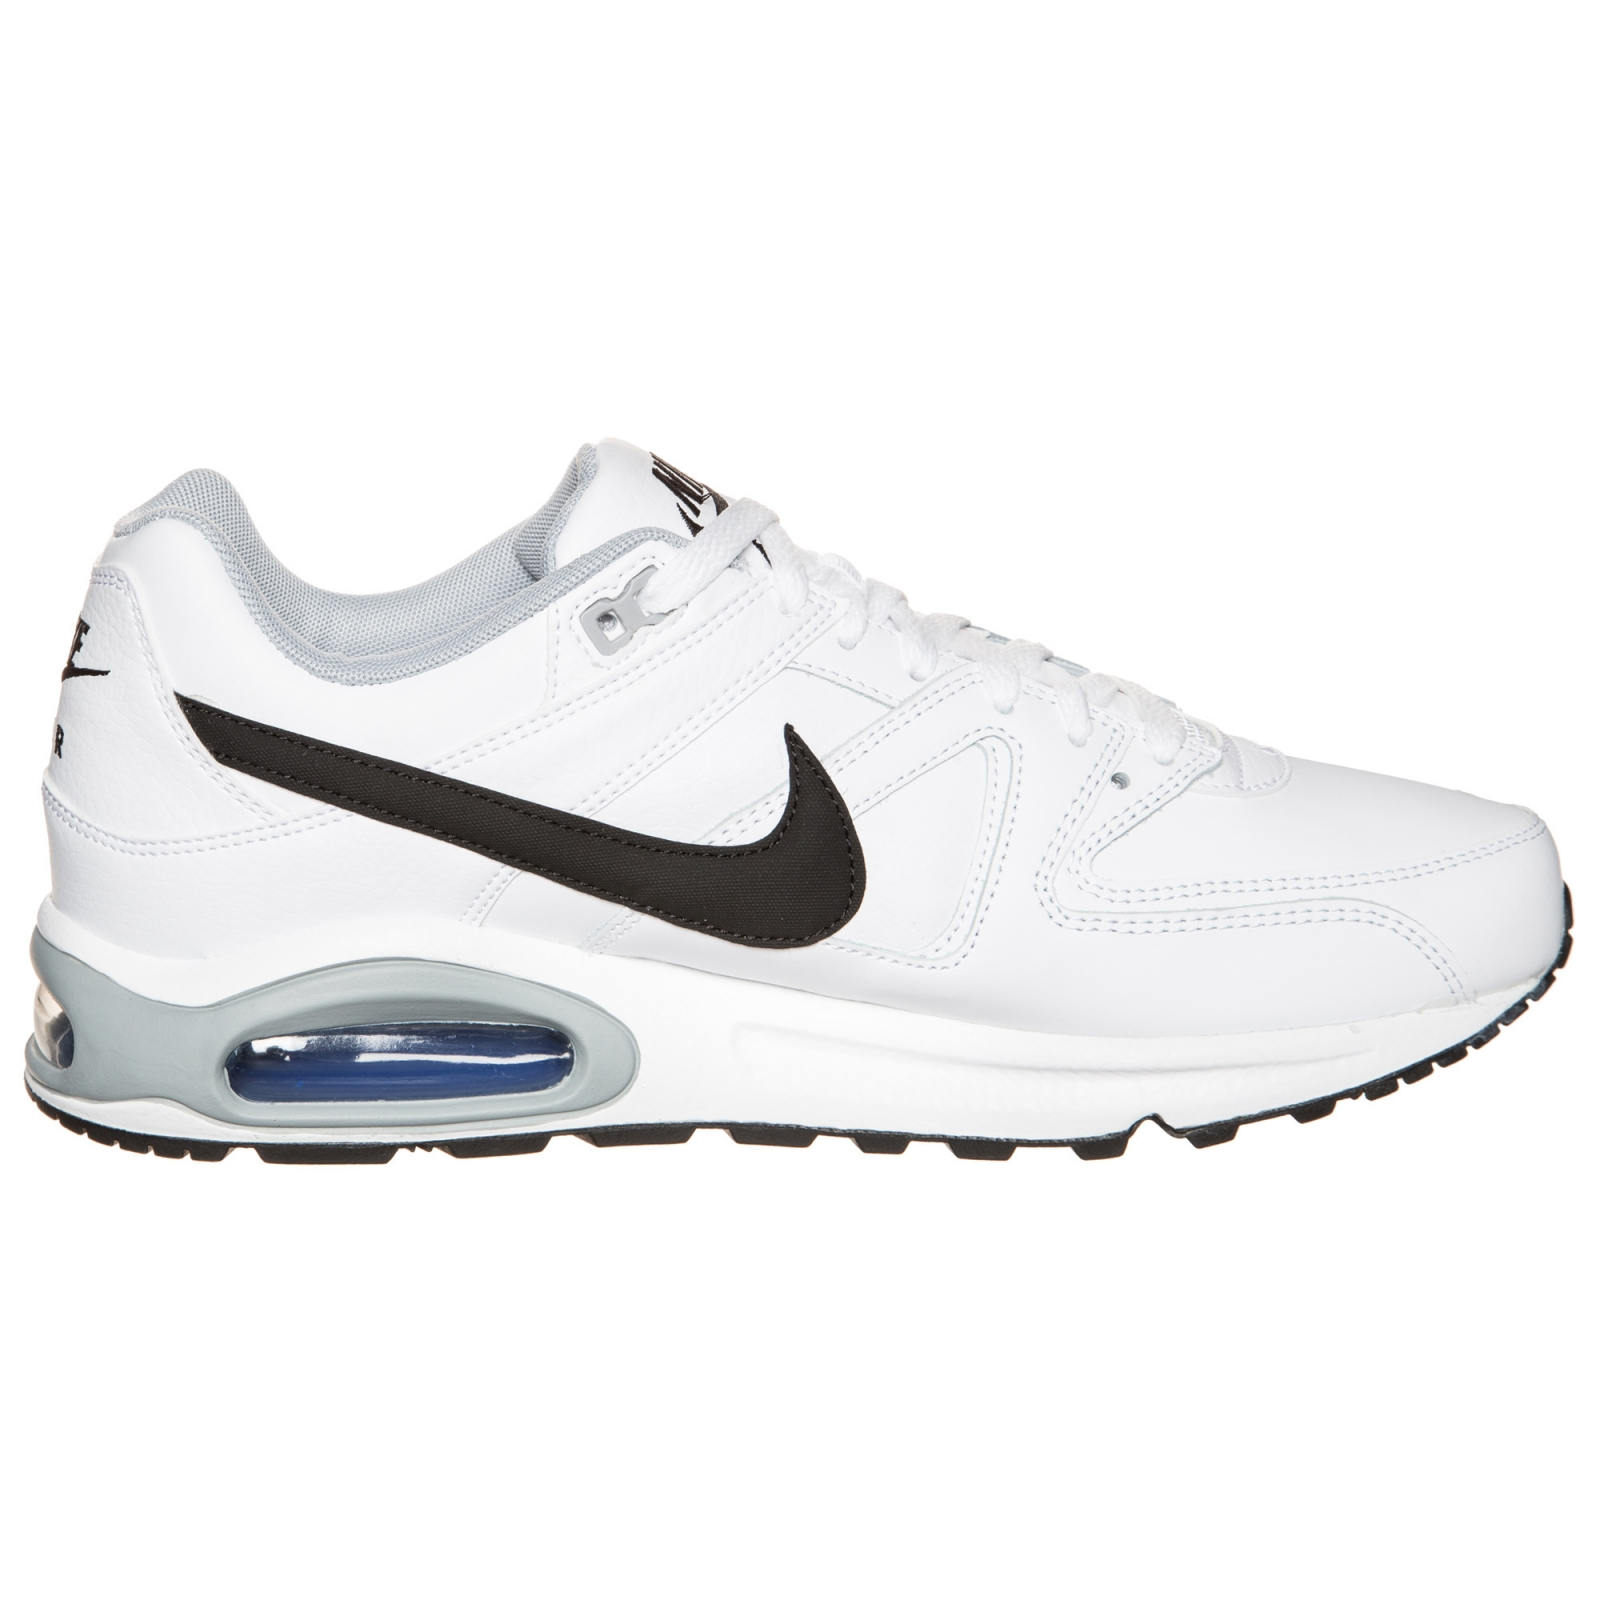 nike air max command uomo offerta